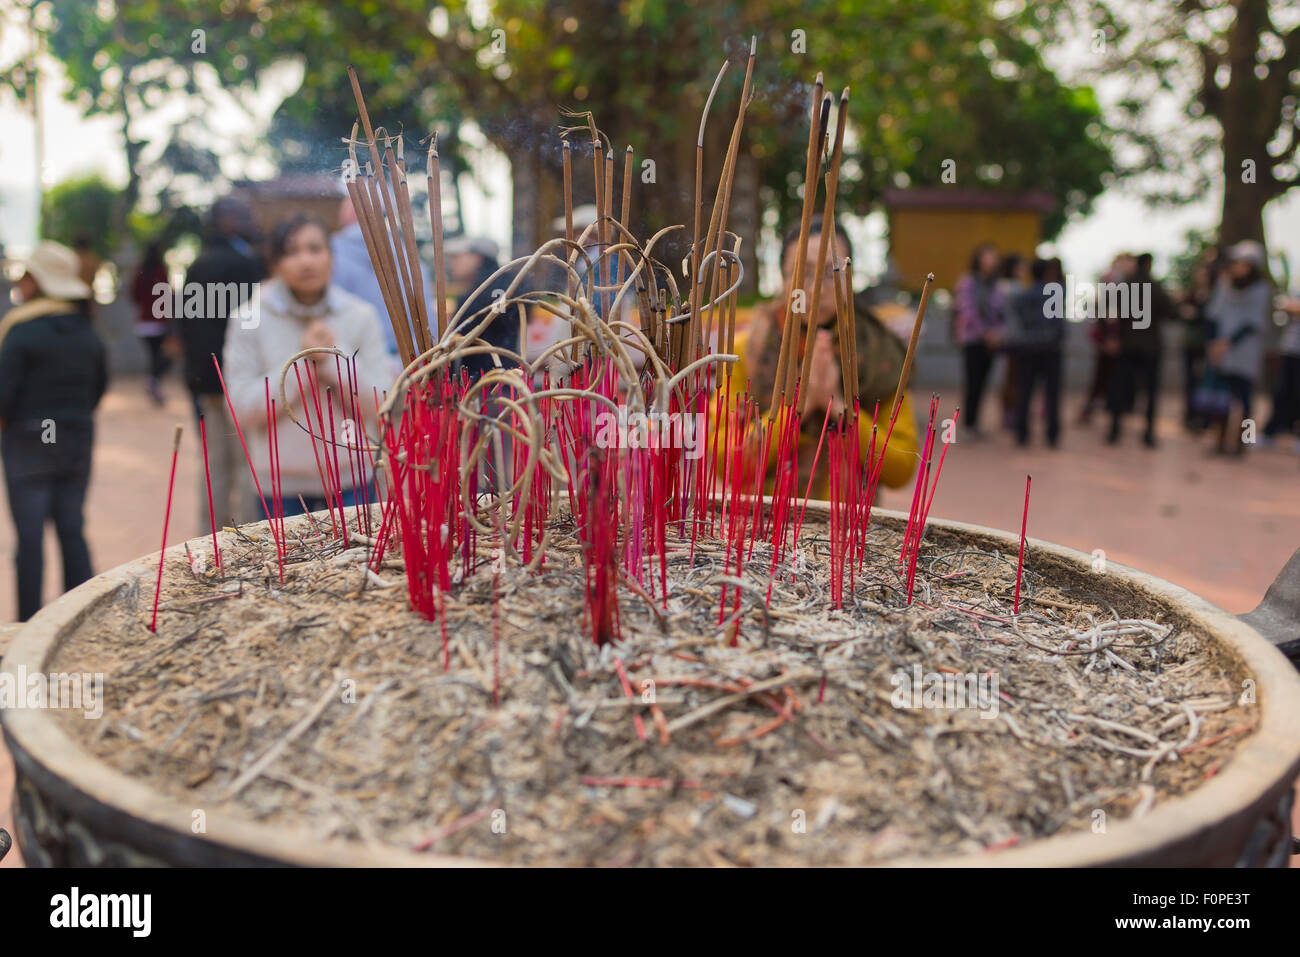 Vietnam urn incense, visitors worship before some newly planted incense sticks at the Tran Quoc Pagoda in Hanoi - Stock Image